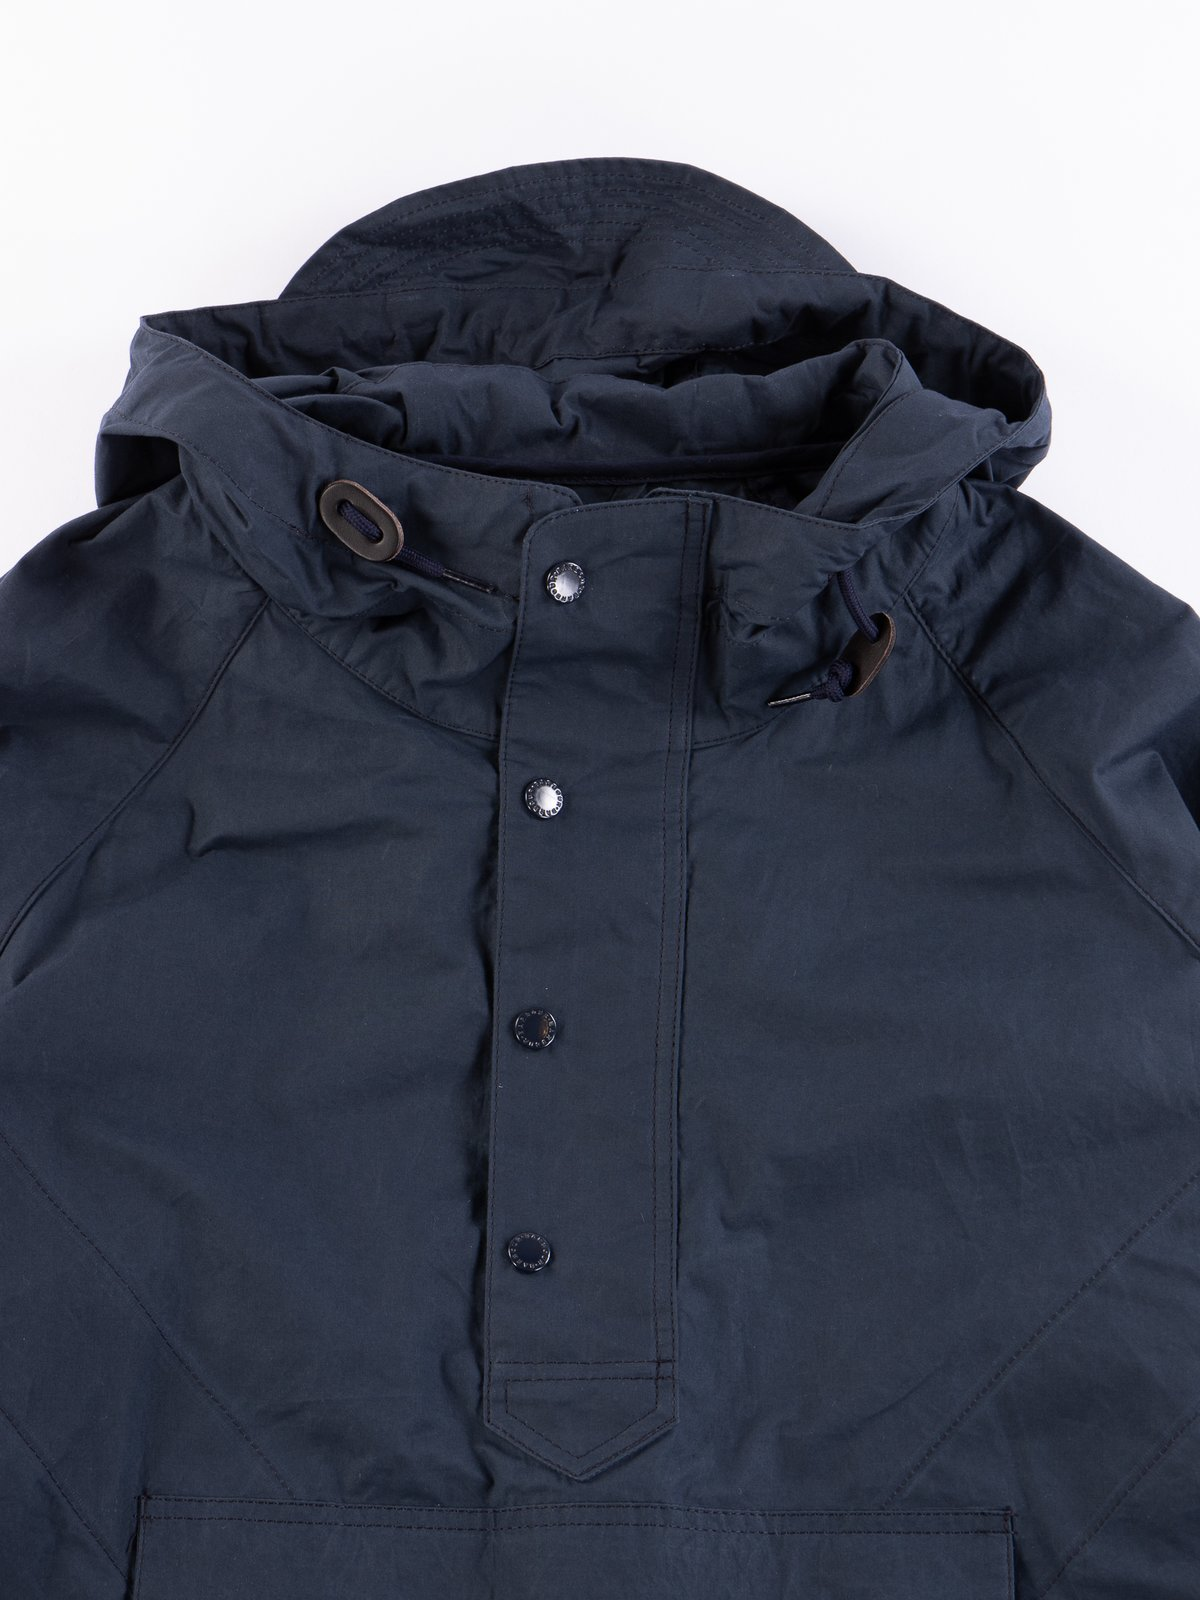 Navy Warby Jacket - Image 3